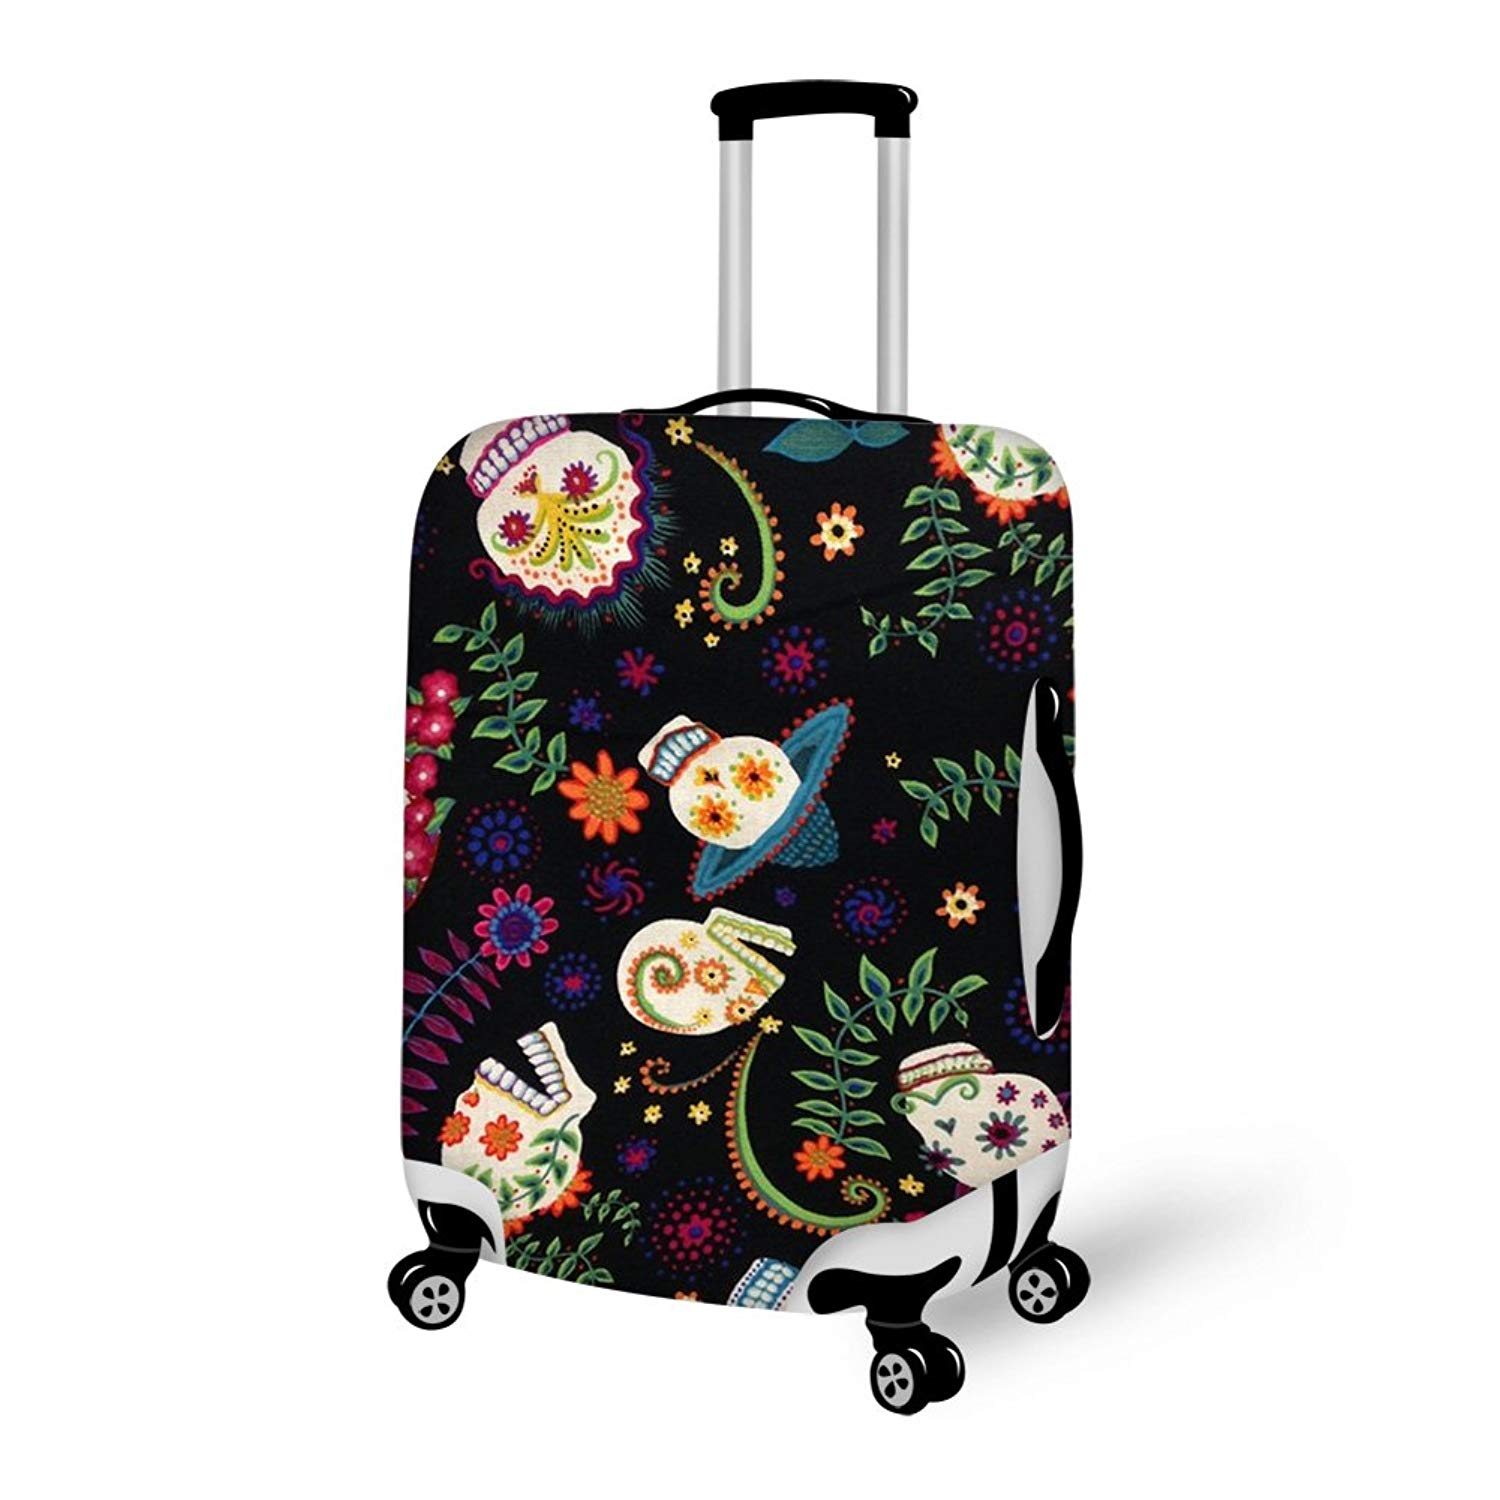 INTERESTPRINT Travel Luggage Protector Suitcase Covers Fit 18-28 Inch Luggage Avocado Green